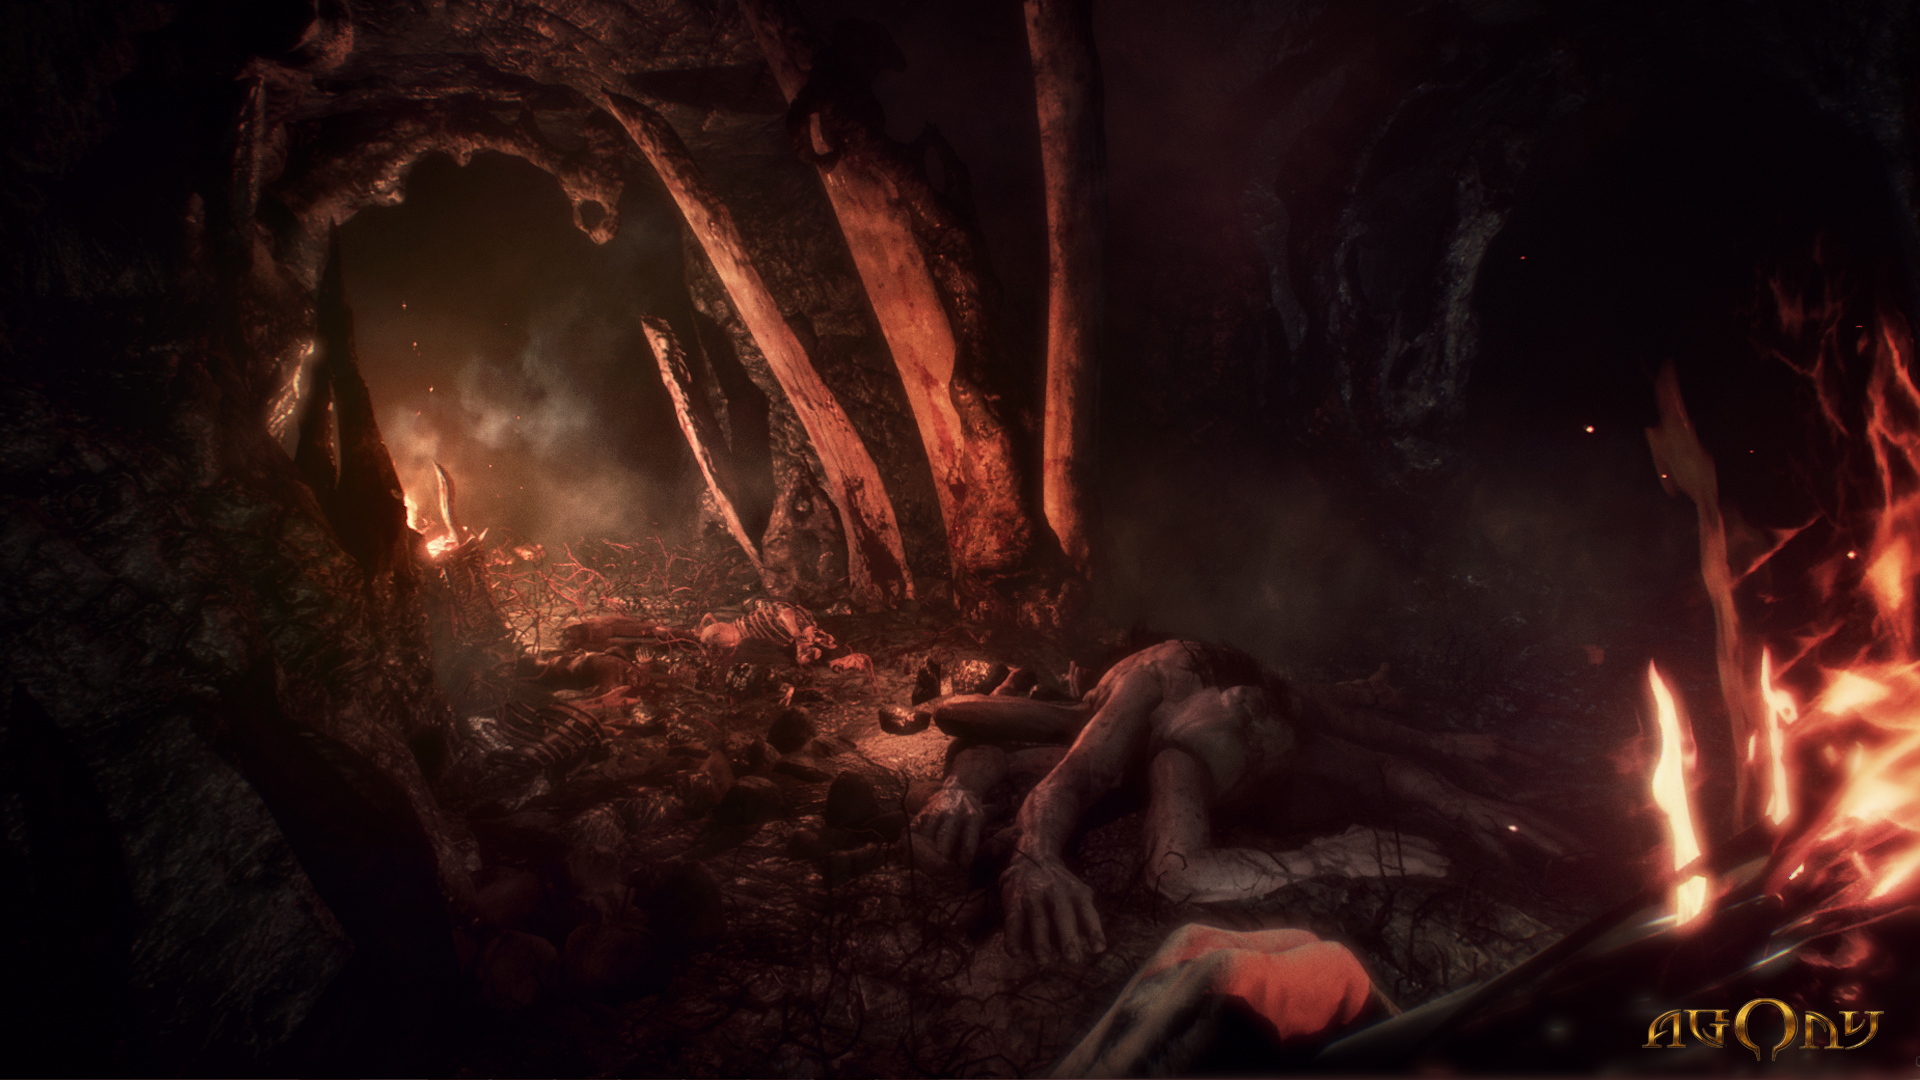 Gamescom 2016: Agony Makes Hell Scary Again in New Trailer (Update: Extended Trailer Released)